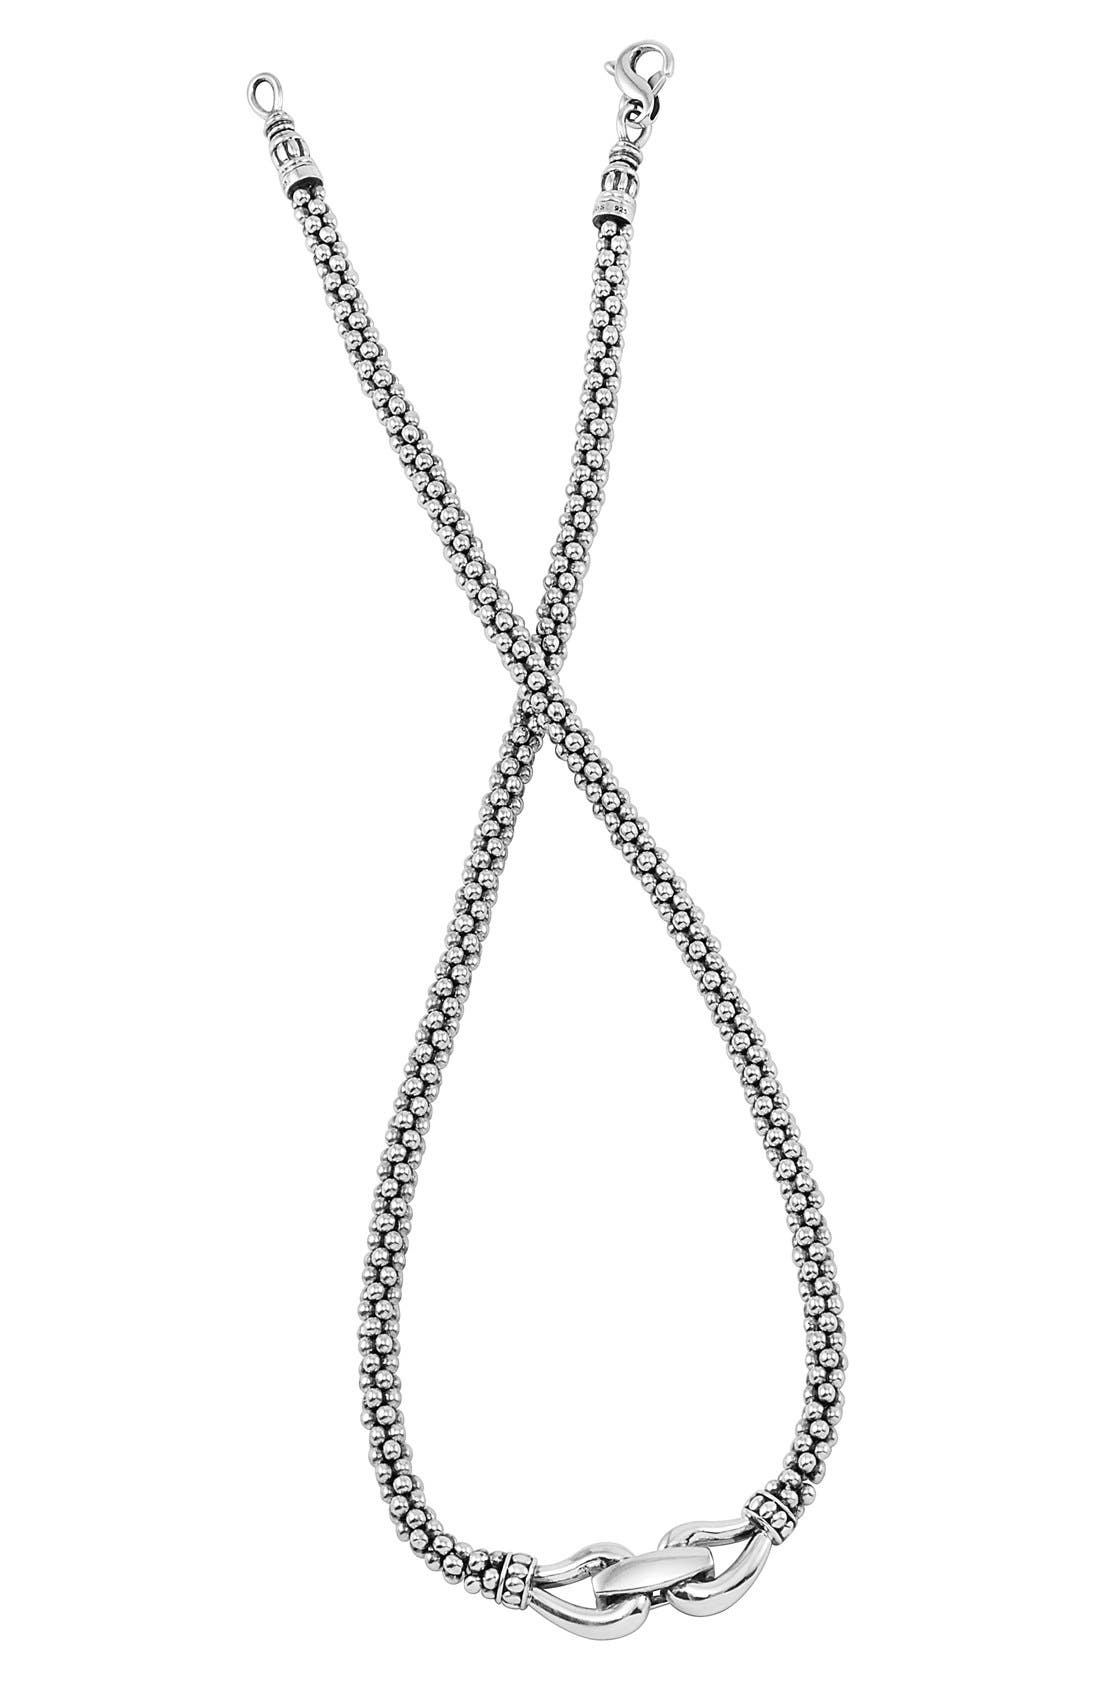 LAGOS 'Derby' Buckle Rope Necklace